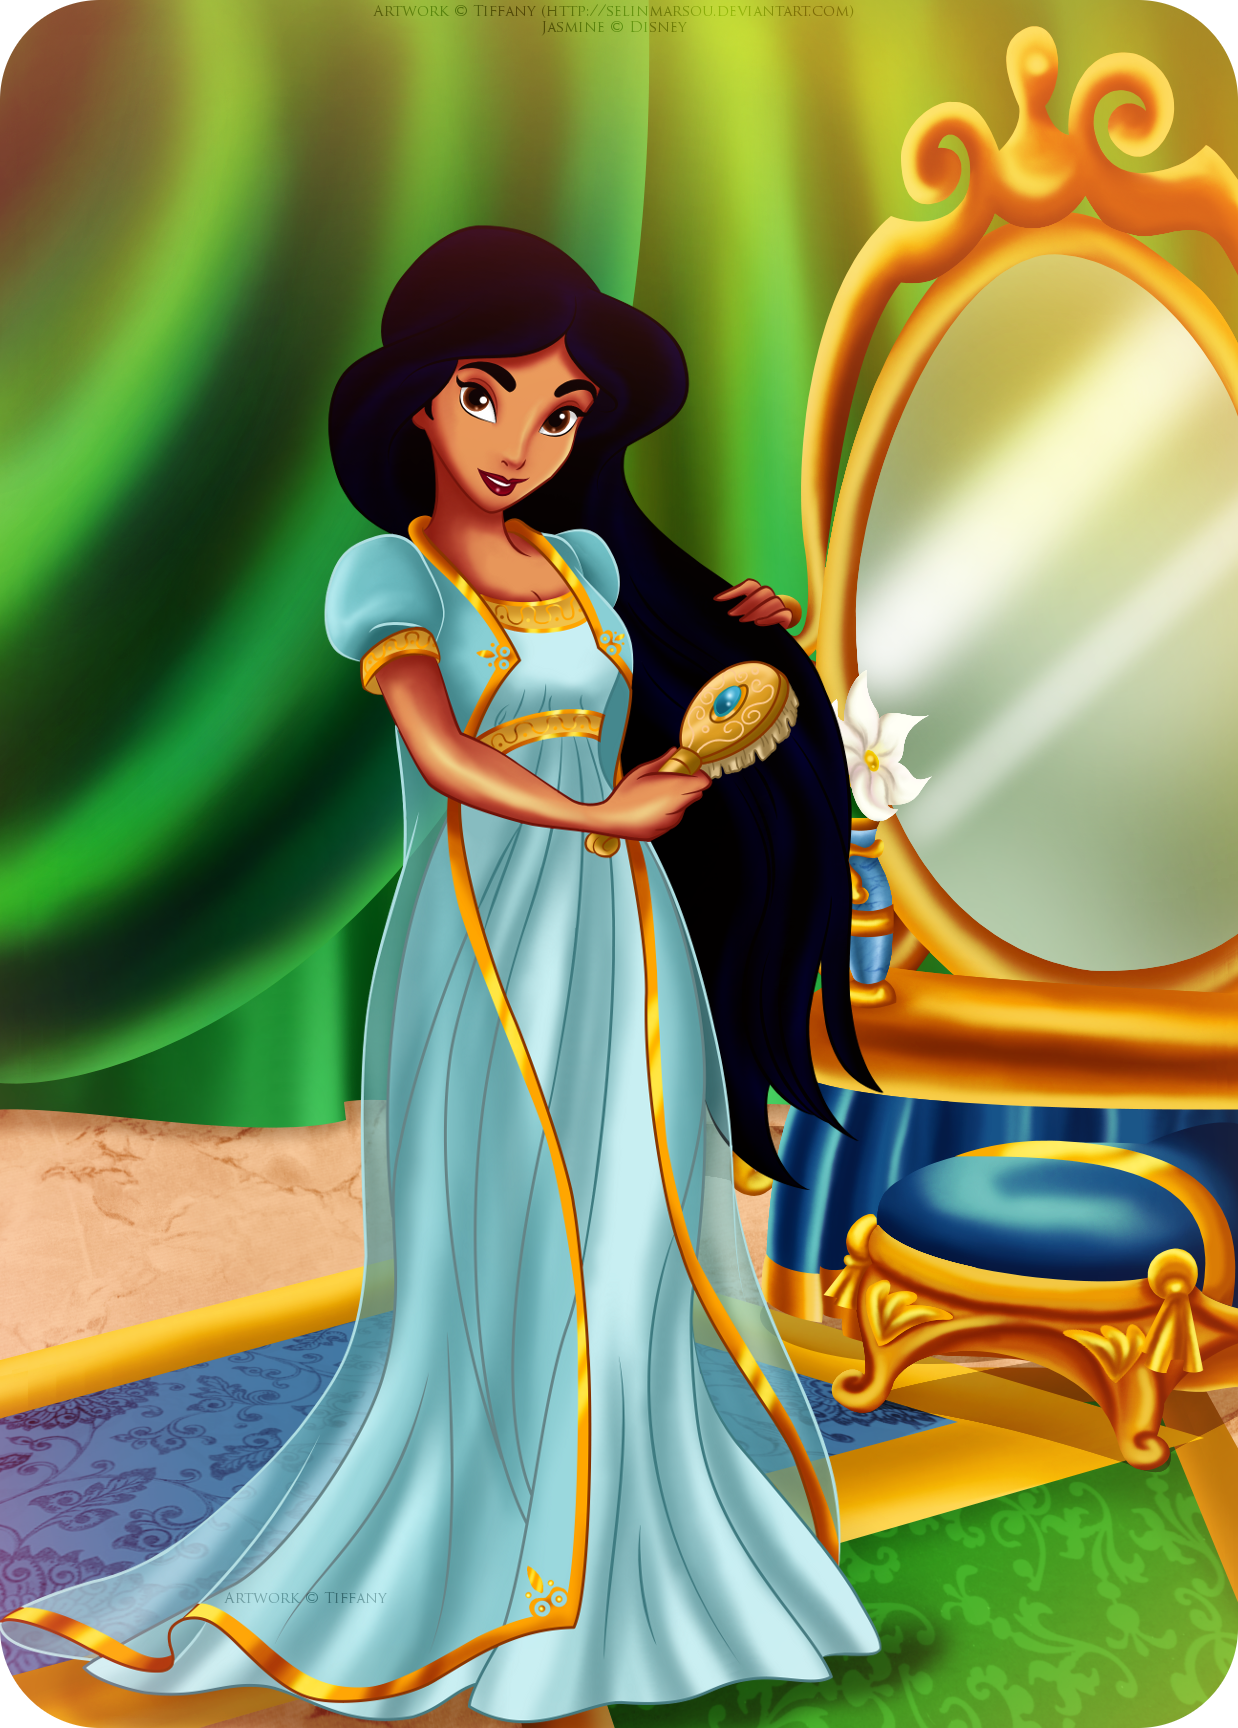 Goodnight princess by selinmarsou on deviantart - Princesse jasmine disney ...